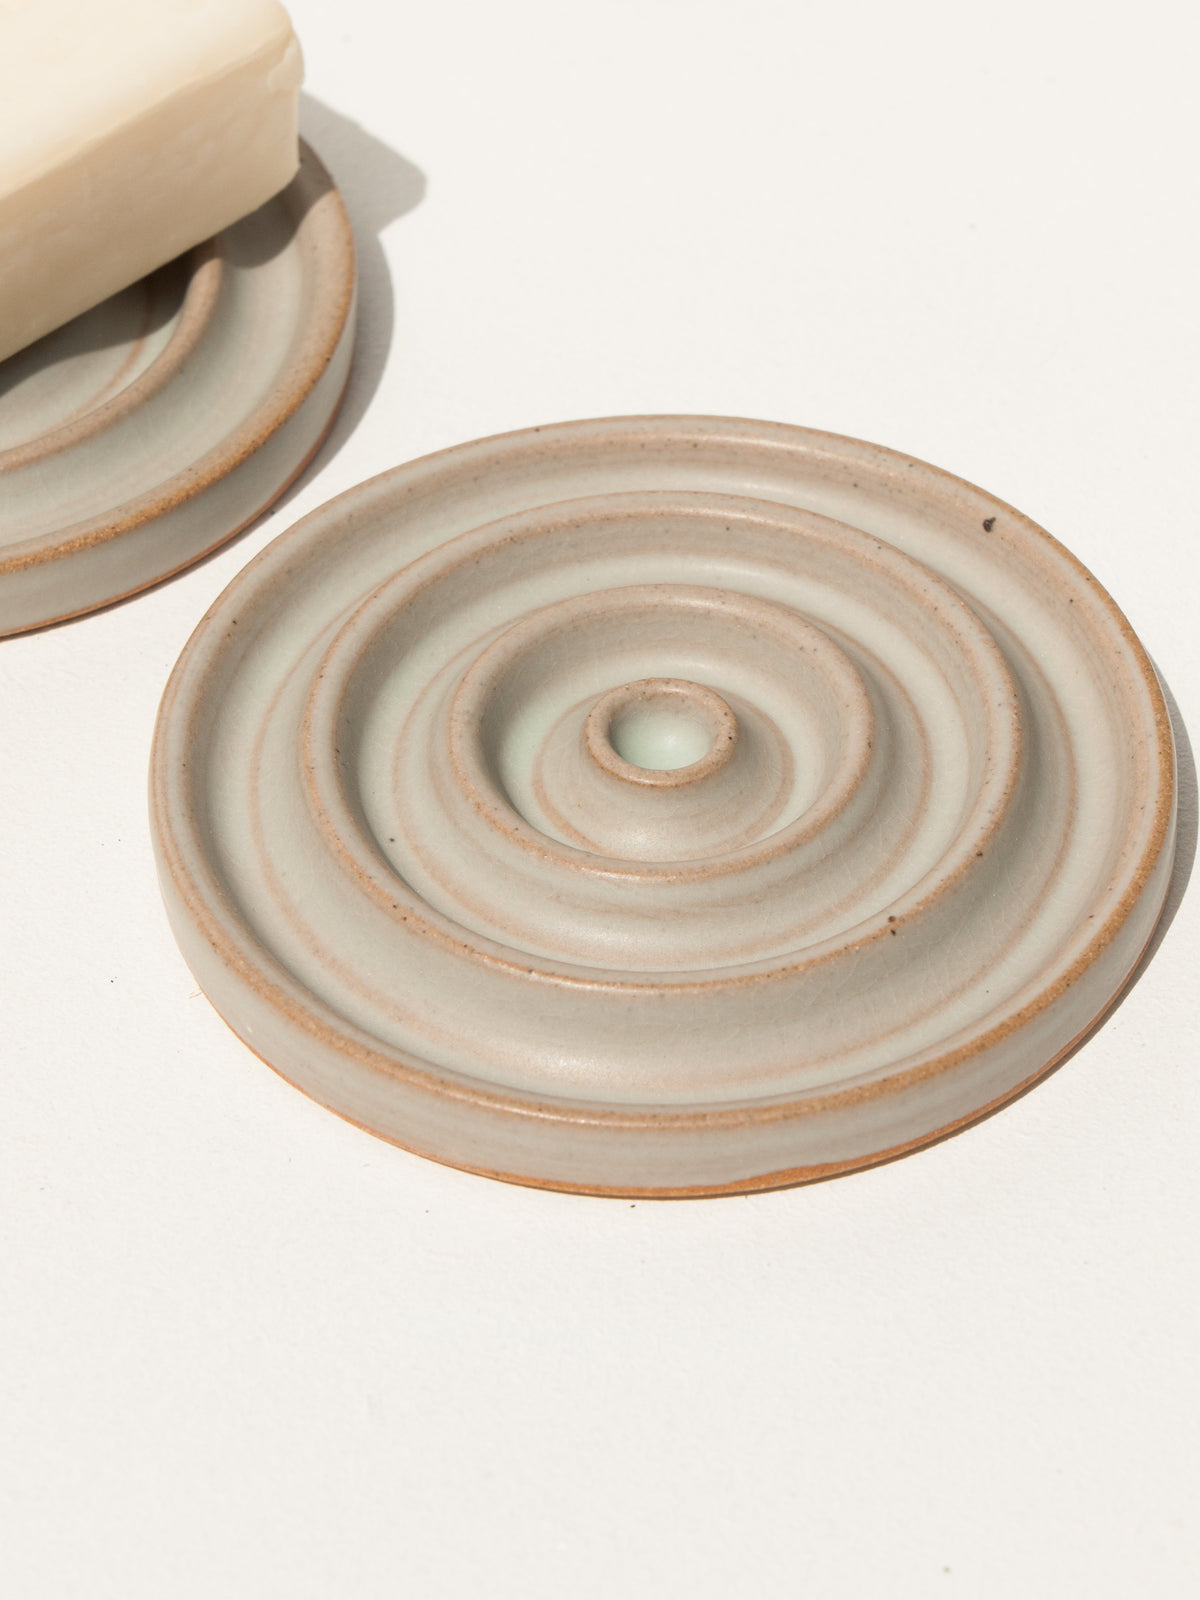 Maker's Mrkt makers Market Melbourne ceramic handmade soap dish from New Zealand by ceramicist Deborah Sweeney